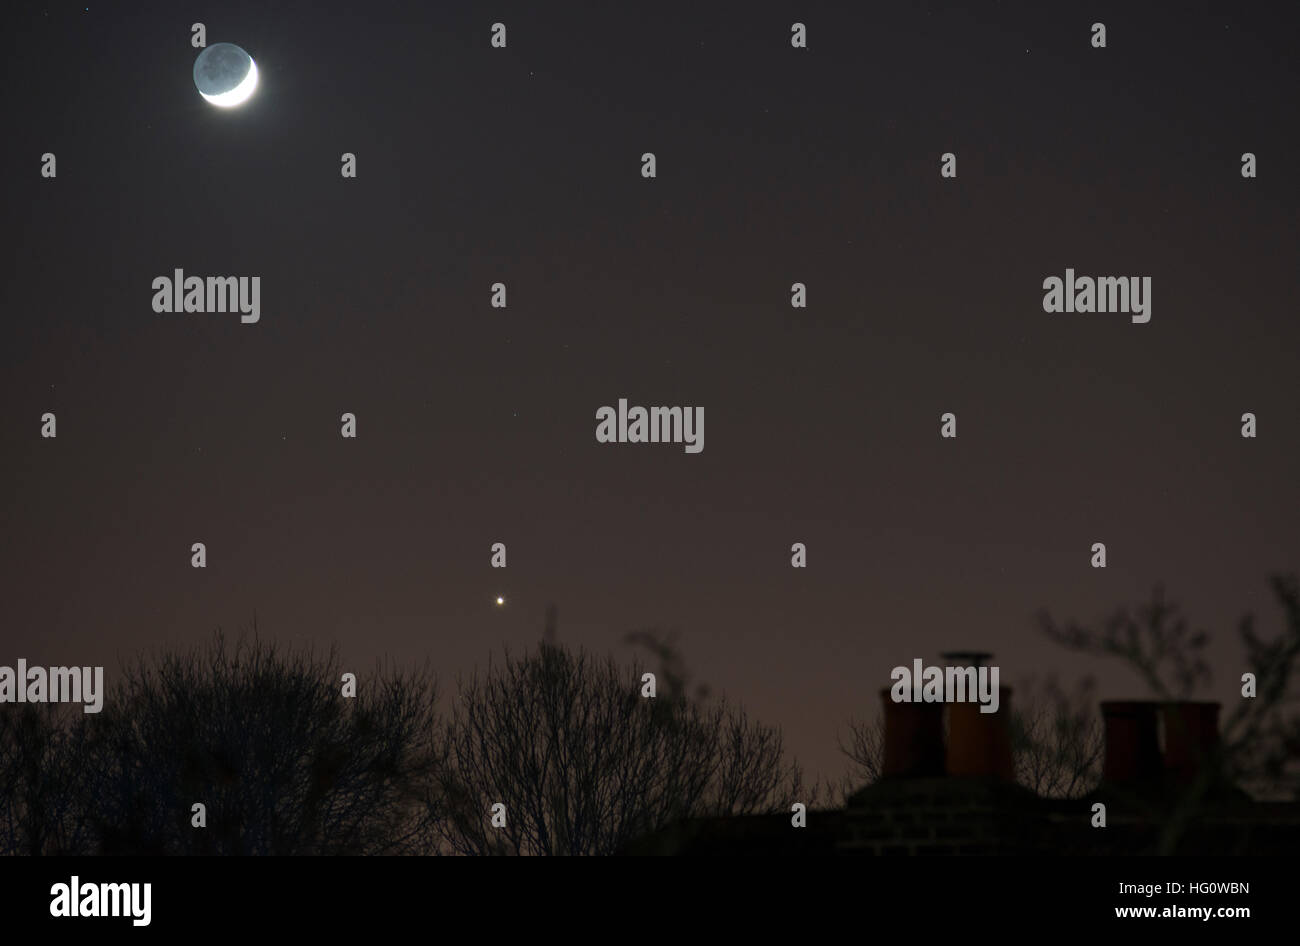 London, UK. 2nd January, 2017. Planet Venus shines brightly only 1.9 degrees south of the waxing crescent moon. - Stock Image